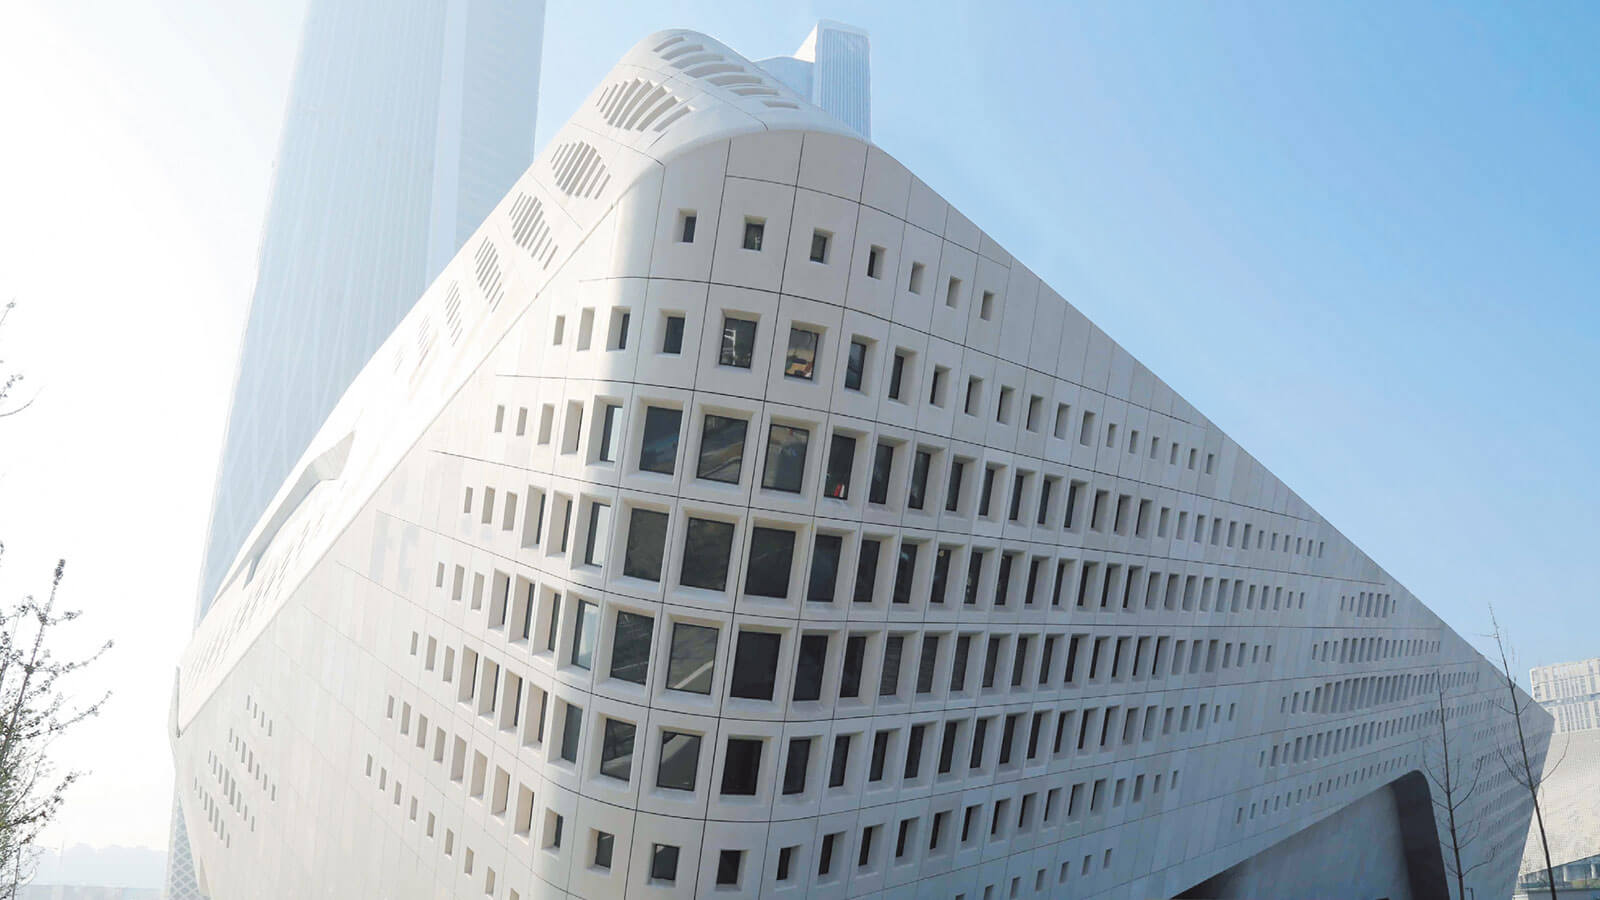 Building made of white concrete.